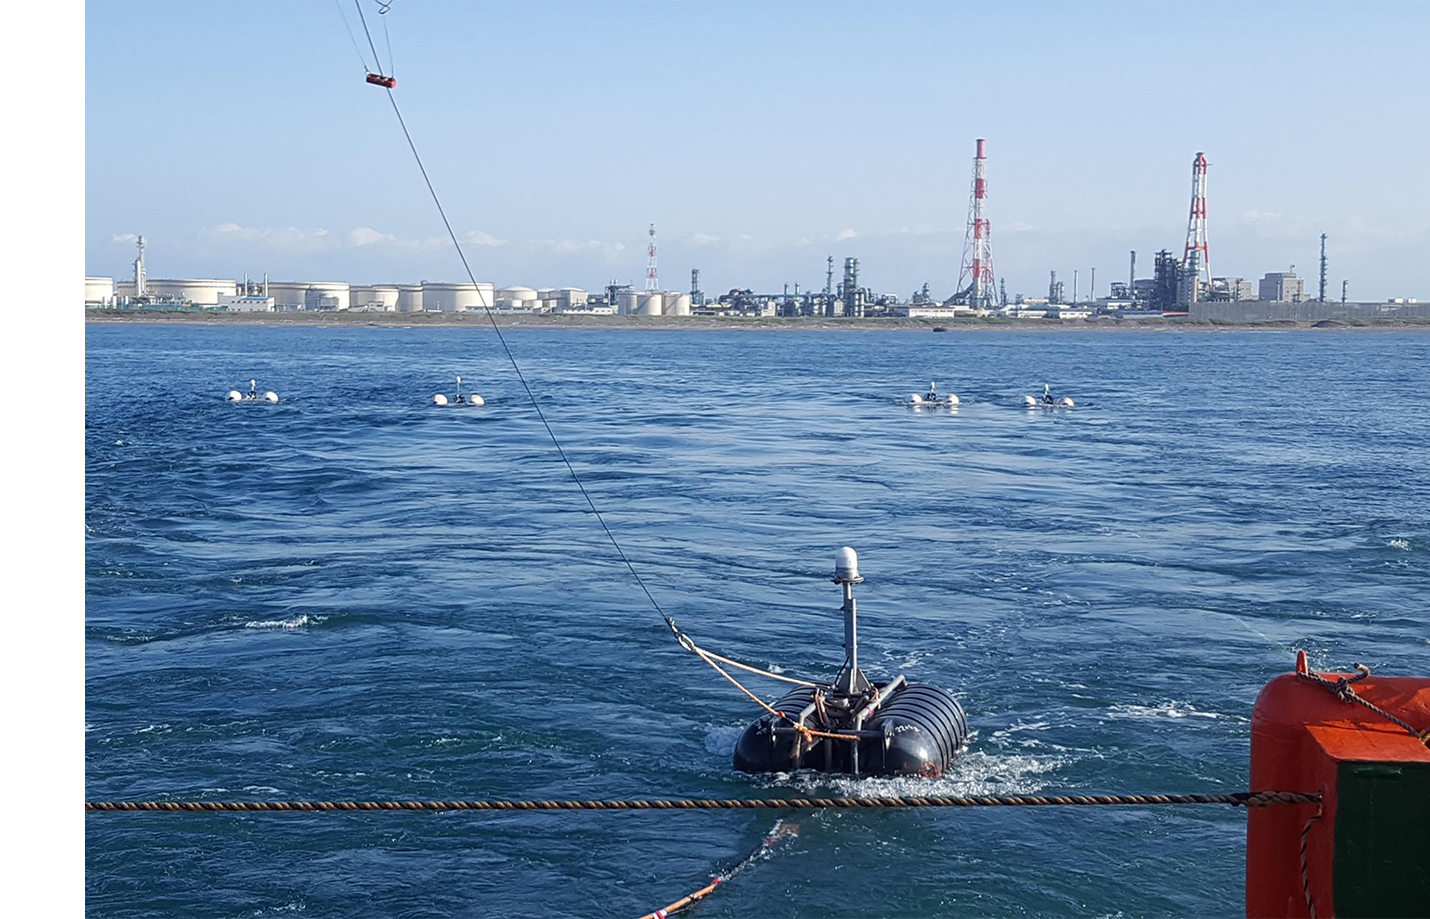 Deployment of the UHR3D system behind a vessel near Tomakomai